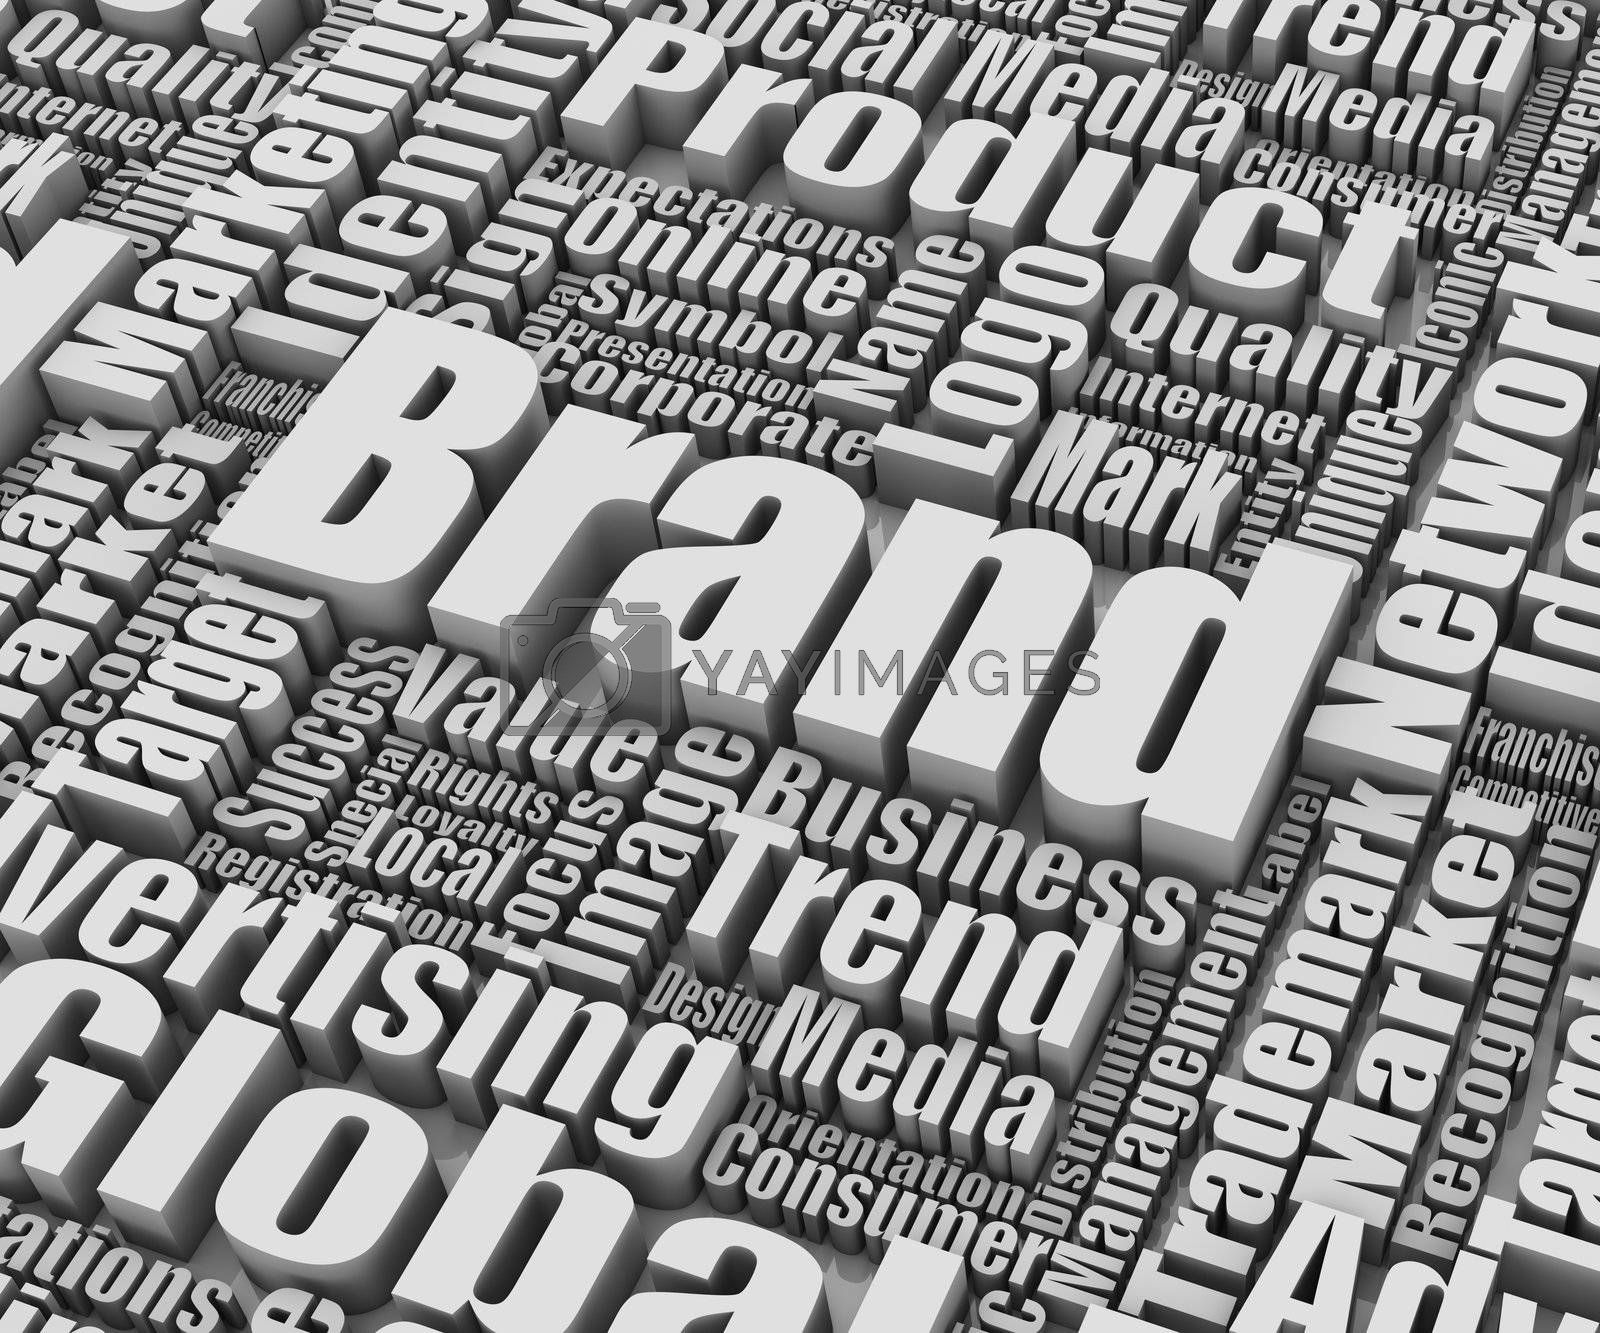 Brand related words. Part of a series of business concepts.